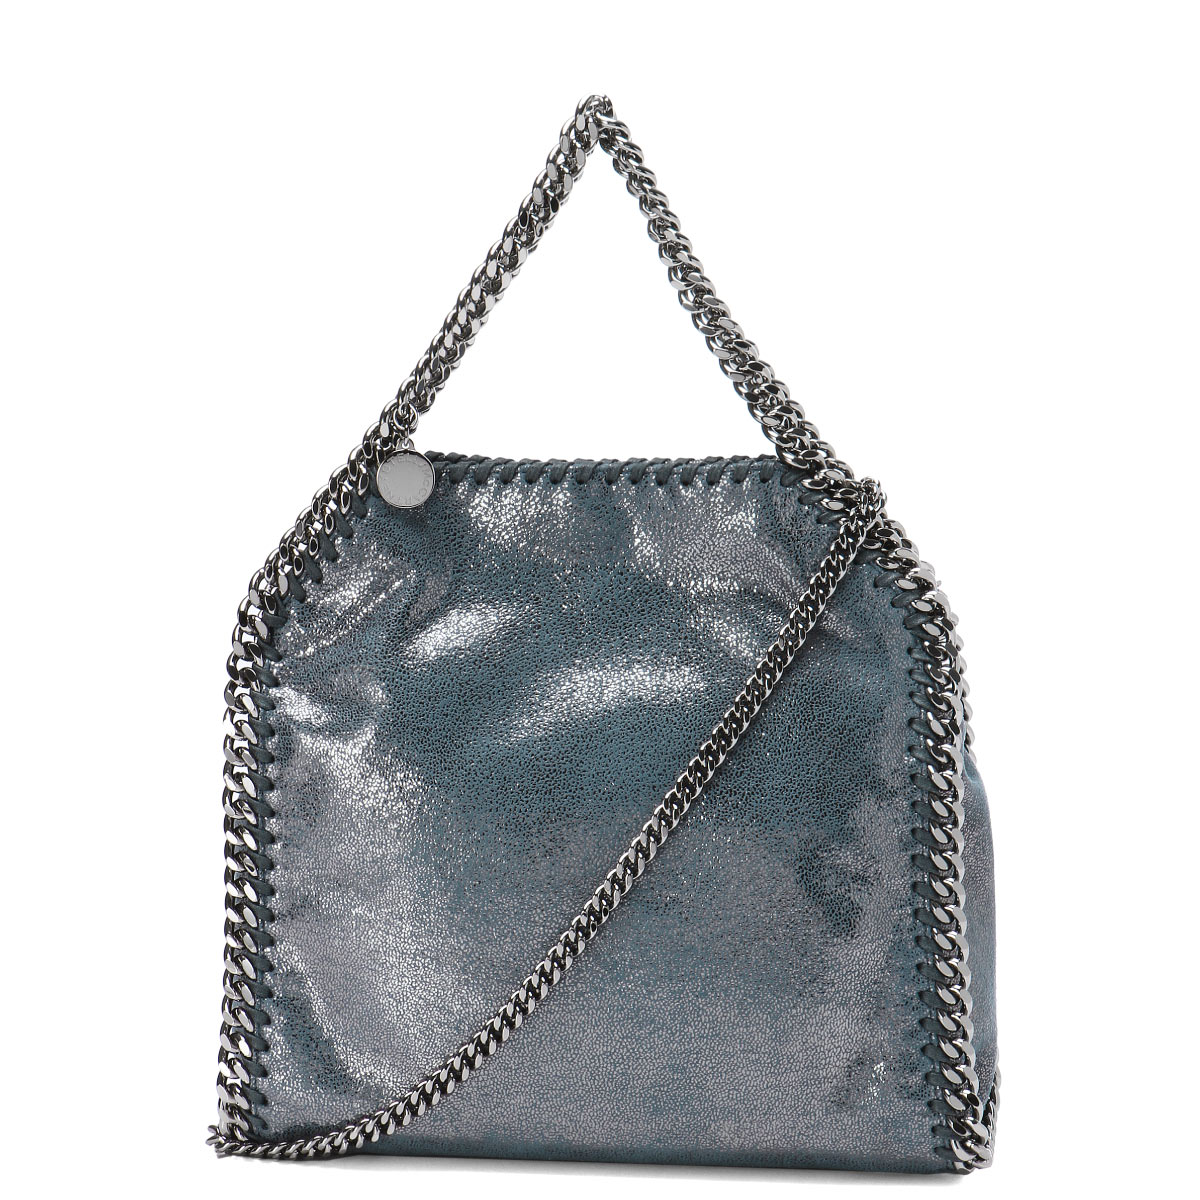 37a23af94a 371223 Stella McCartney STELLA McCARTNEY bag lady W8176 4107 shoulders tote  bag mini-FALABELLA Fala seawife BLUE LAGOON blue belonging to